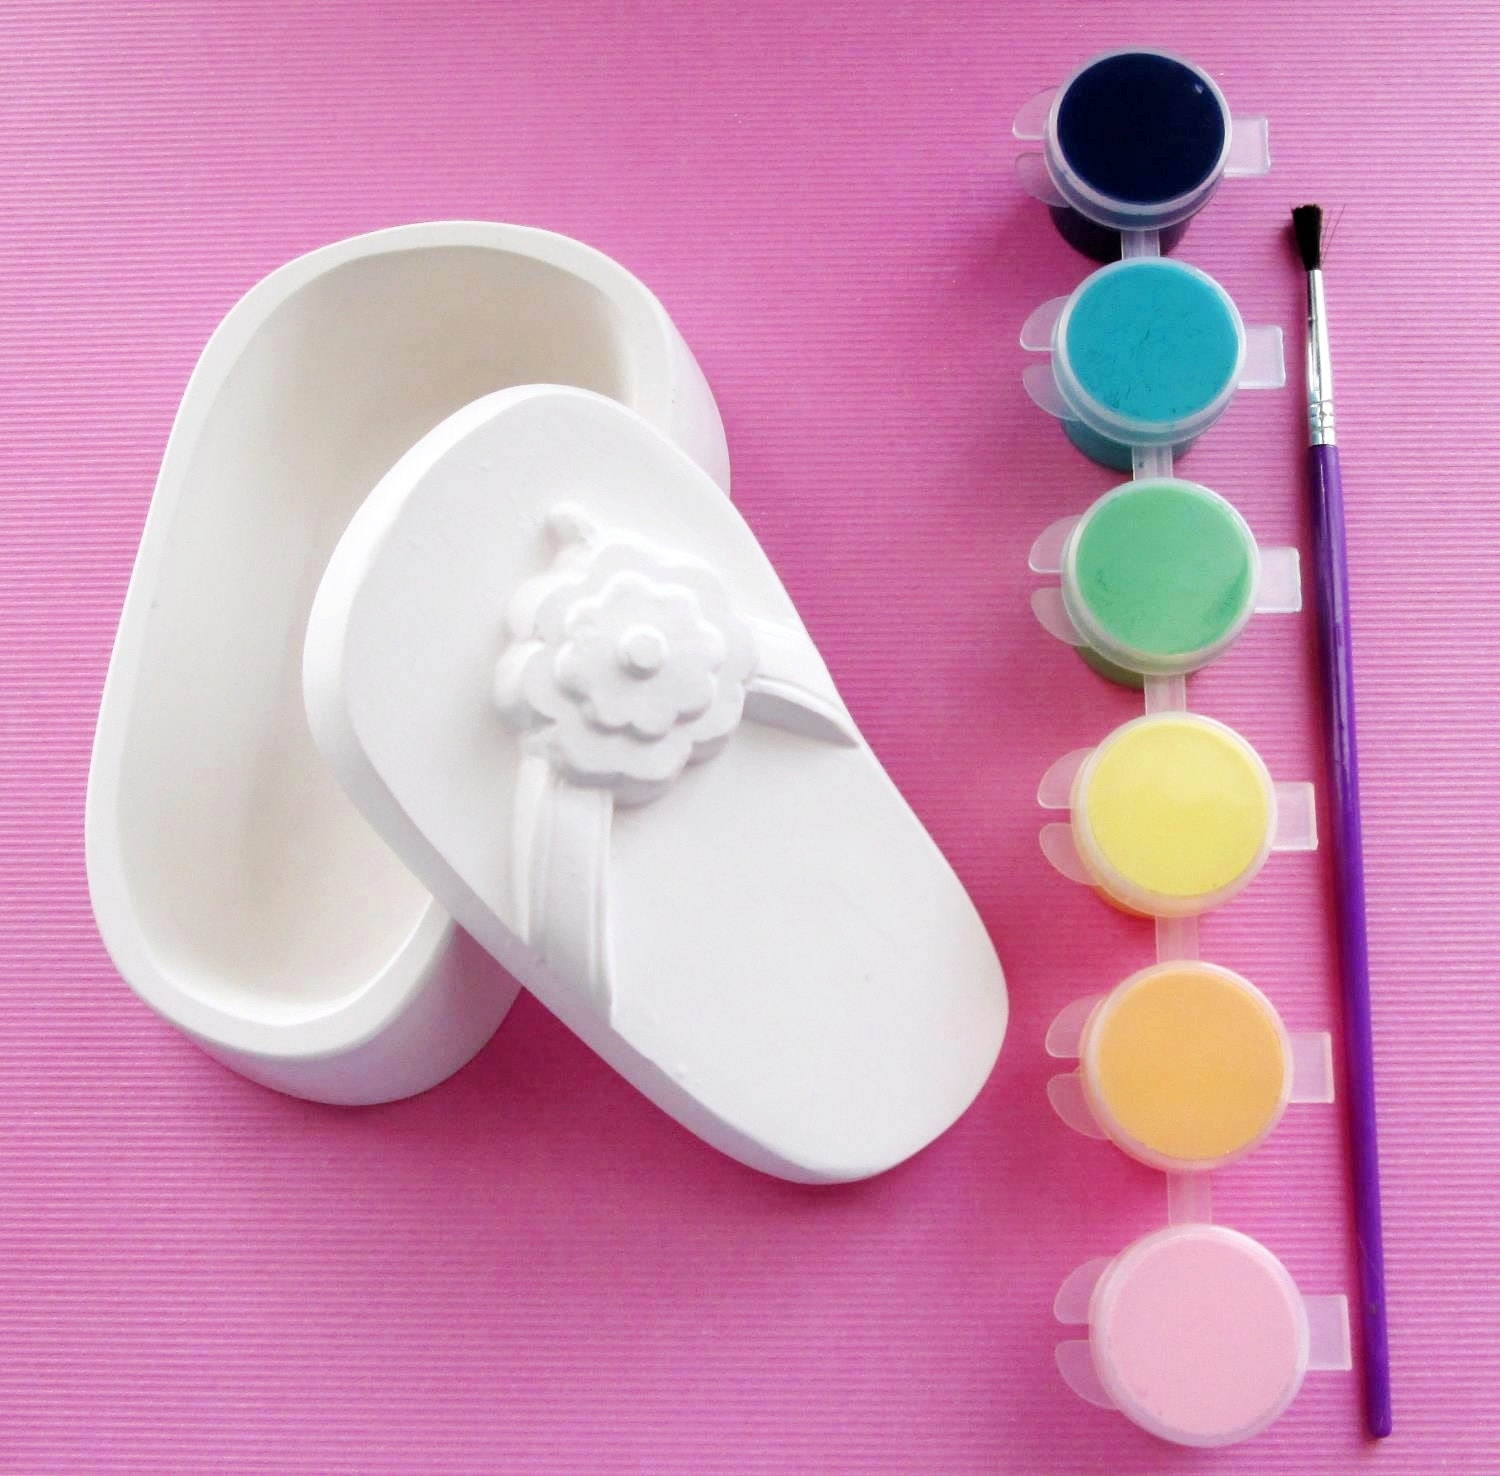 Flip flop plaster painting kit art party craft by for Plaster crafts to paint